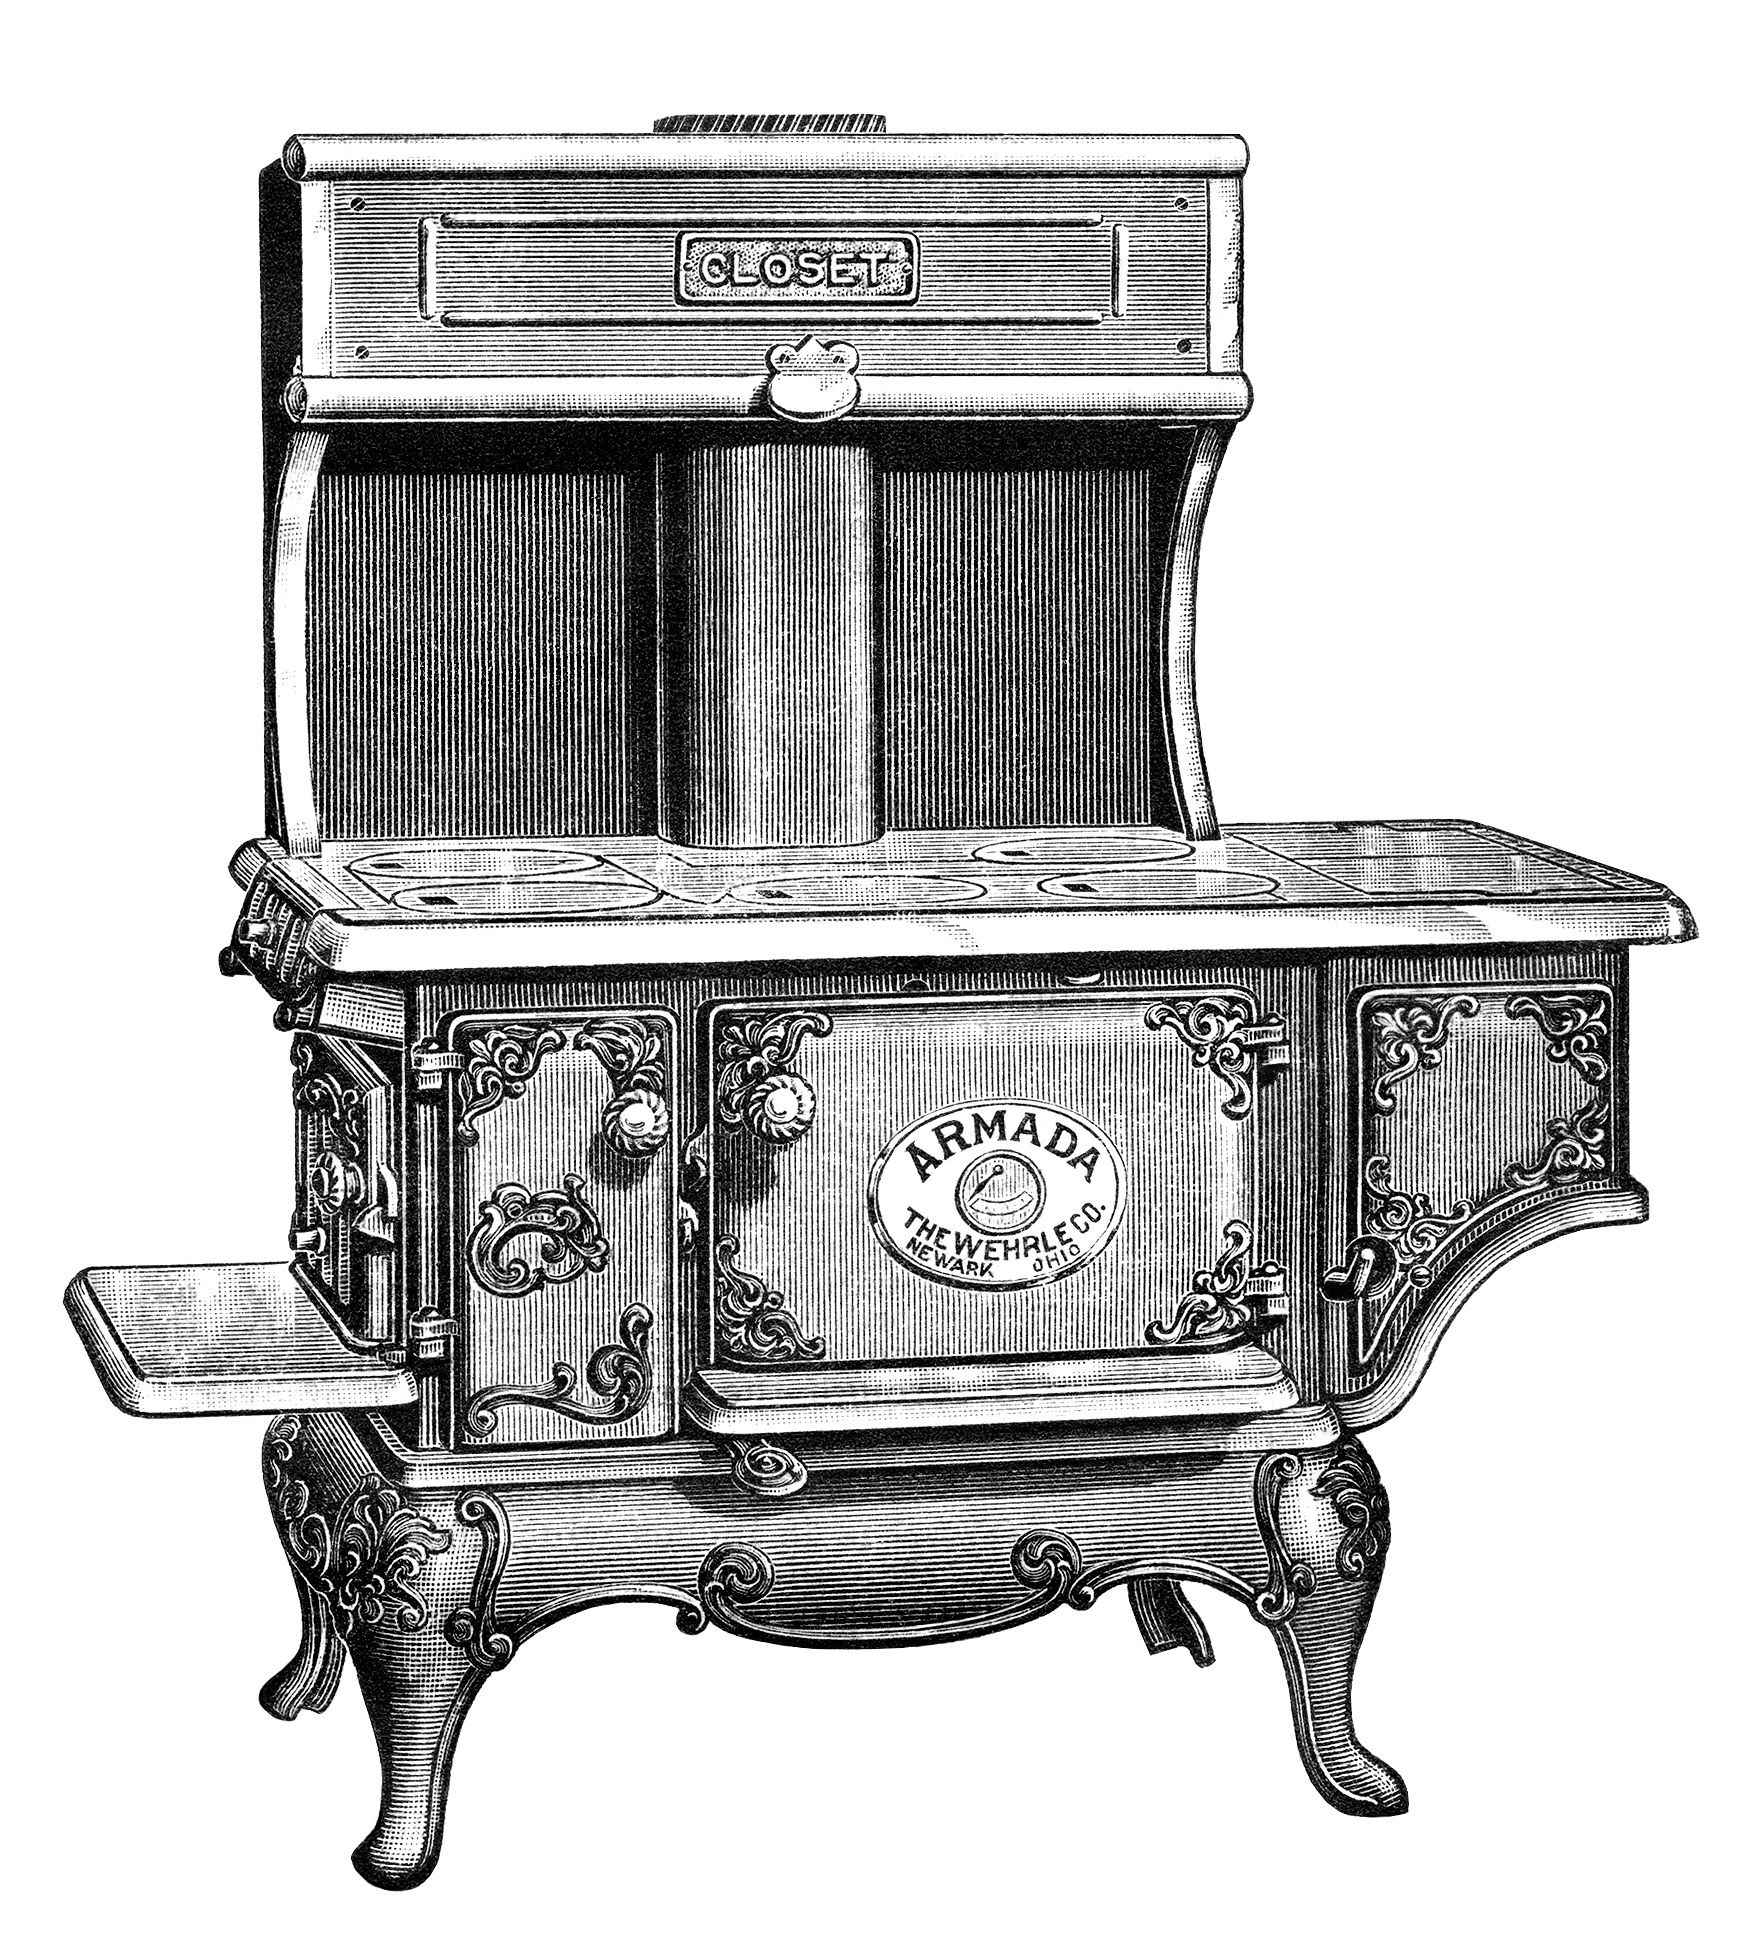 Old Fashioned Stove: Old Coal-Burning Stove Parts